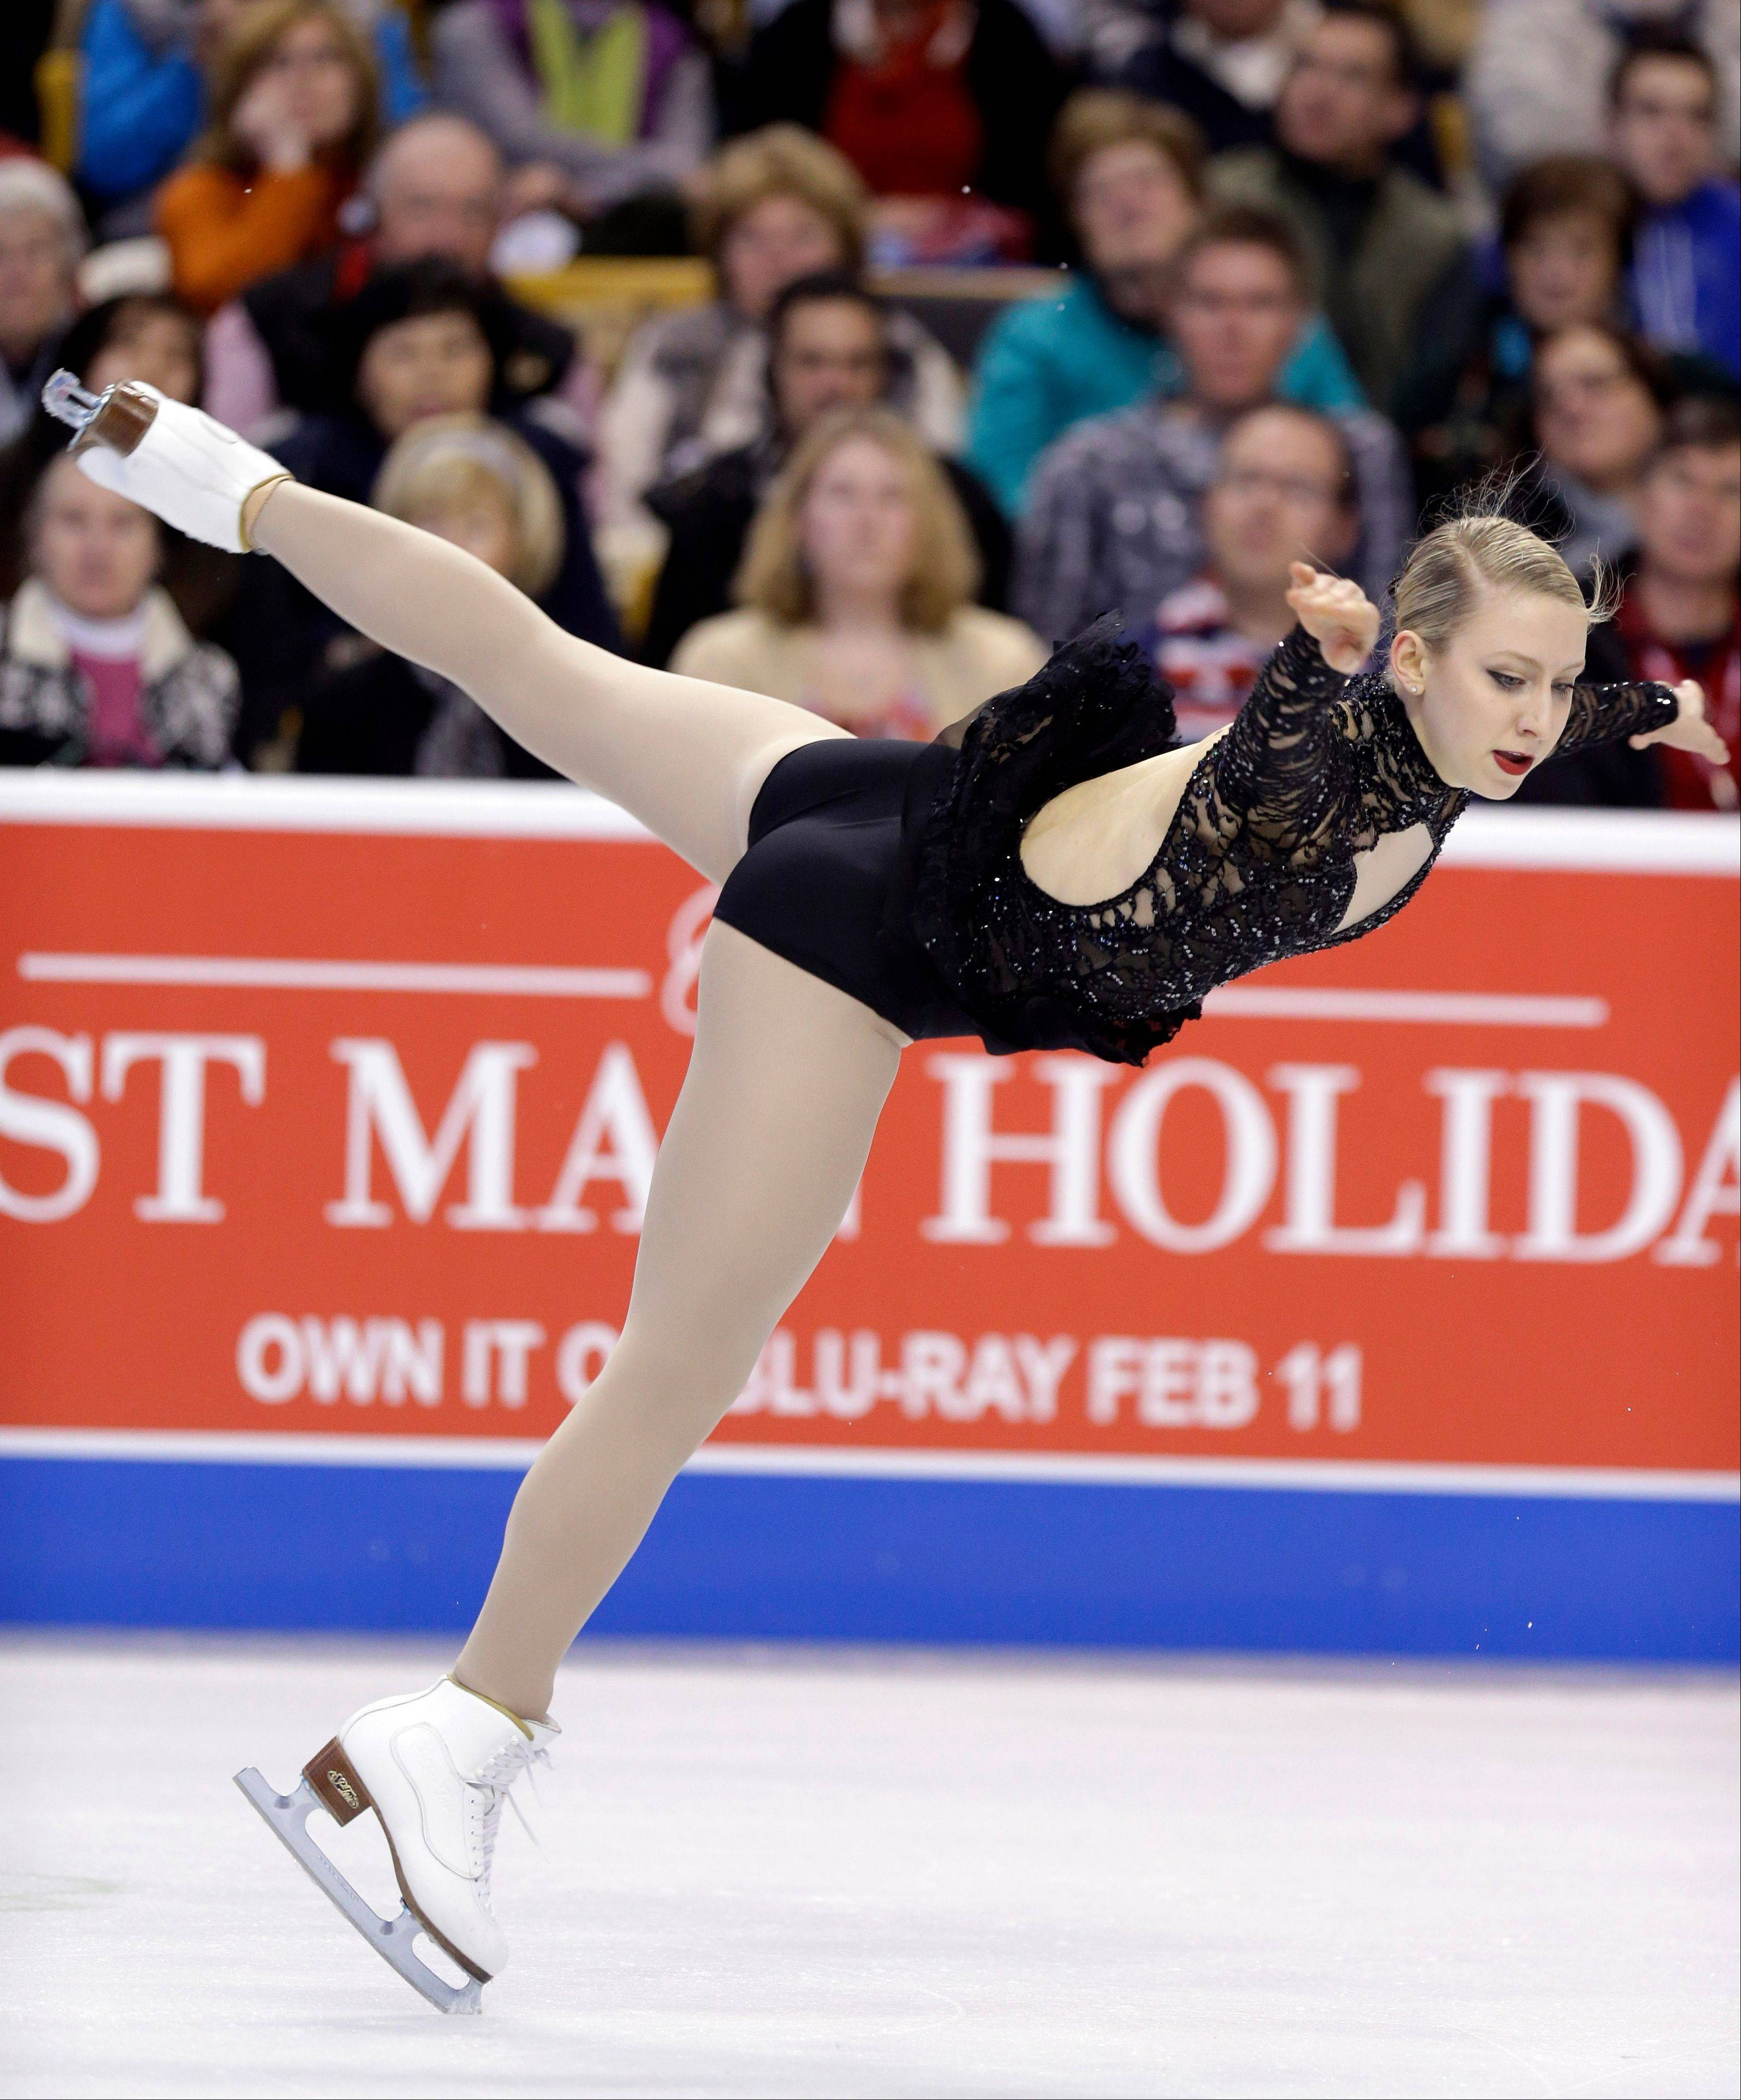 Agnes Zawadzki of Des Plaines competes during the women's free skate at the U.S. Figure Skating Championships Saturday in Boston.